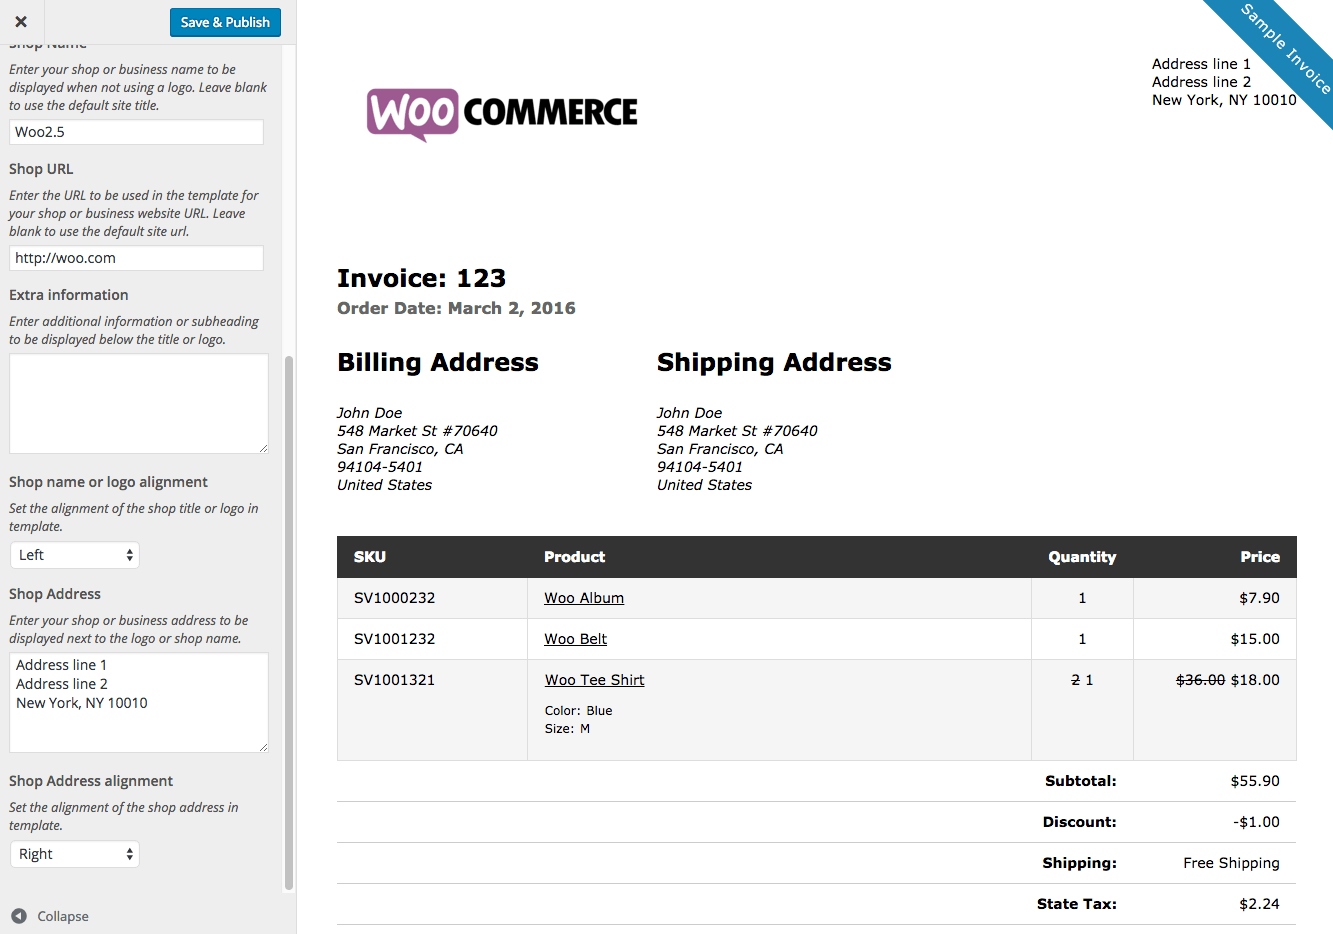 Modaoxus  Ravishing Woocommerce Print Invoices Amp Packing Lists  Woocommerce Docs With Handsome Woocommerce Print Invoices  Packing Lists Customizer With Delectable Ios Receipt Printer Also Best Free Receipt Scanner App In Addition Examples Of Receipts For Services And Walmart Gift Receipt Policy As Well As Personalized Receipt Books Cheap Additionally Delta E Ticket Receipt From Docswoocommercecom With Modaoxus  Handsome Woocommerce Print Invoices Amp Packing Lists  Woocommerce Docs With Delectable Woocommerce Print Invoices  Packing Lists Customizer And Ravishing Ios Receipt Printer Also Best Free Receipt Scanner App In Addition Examples Of Receipts For Services From Docswoocommercecom